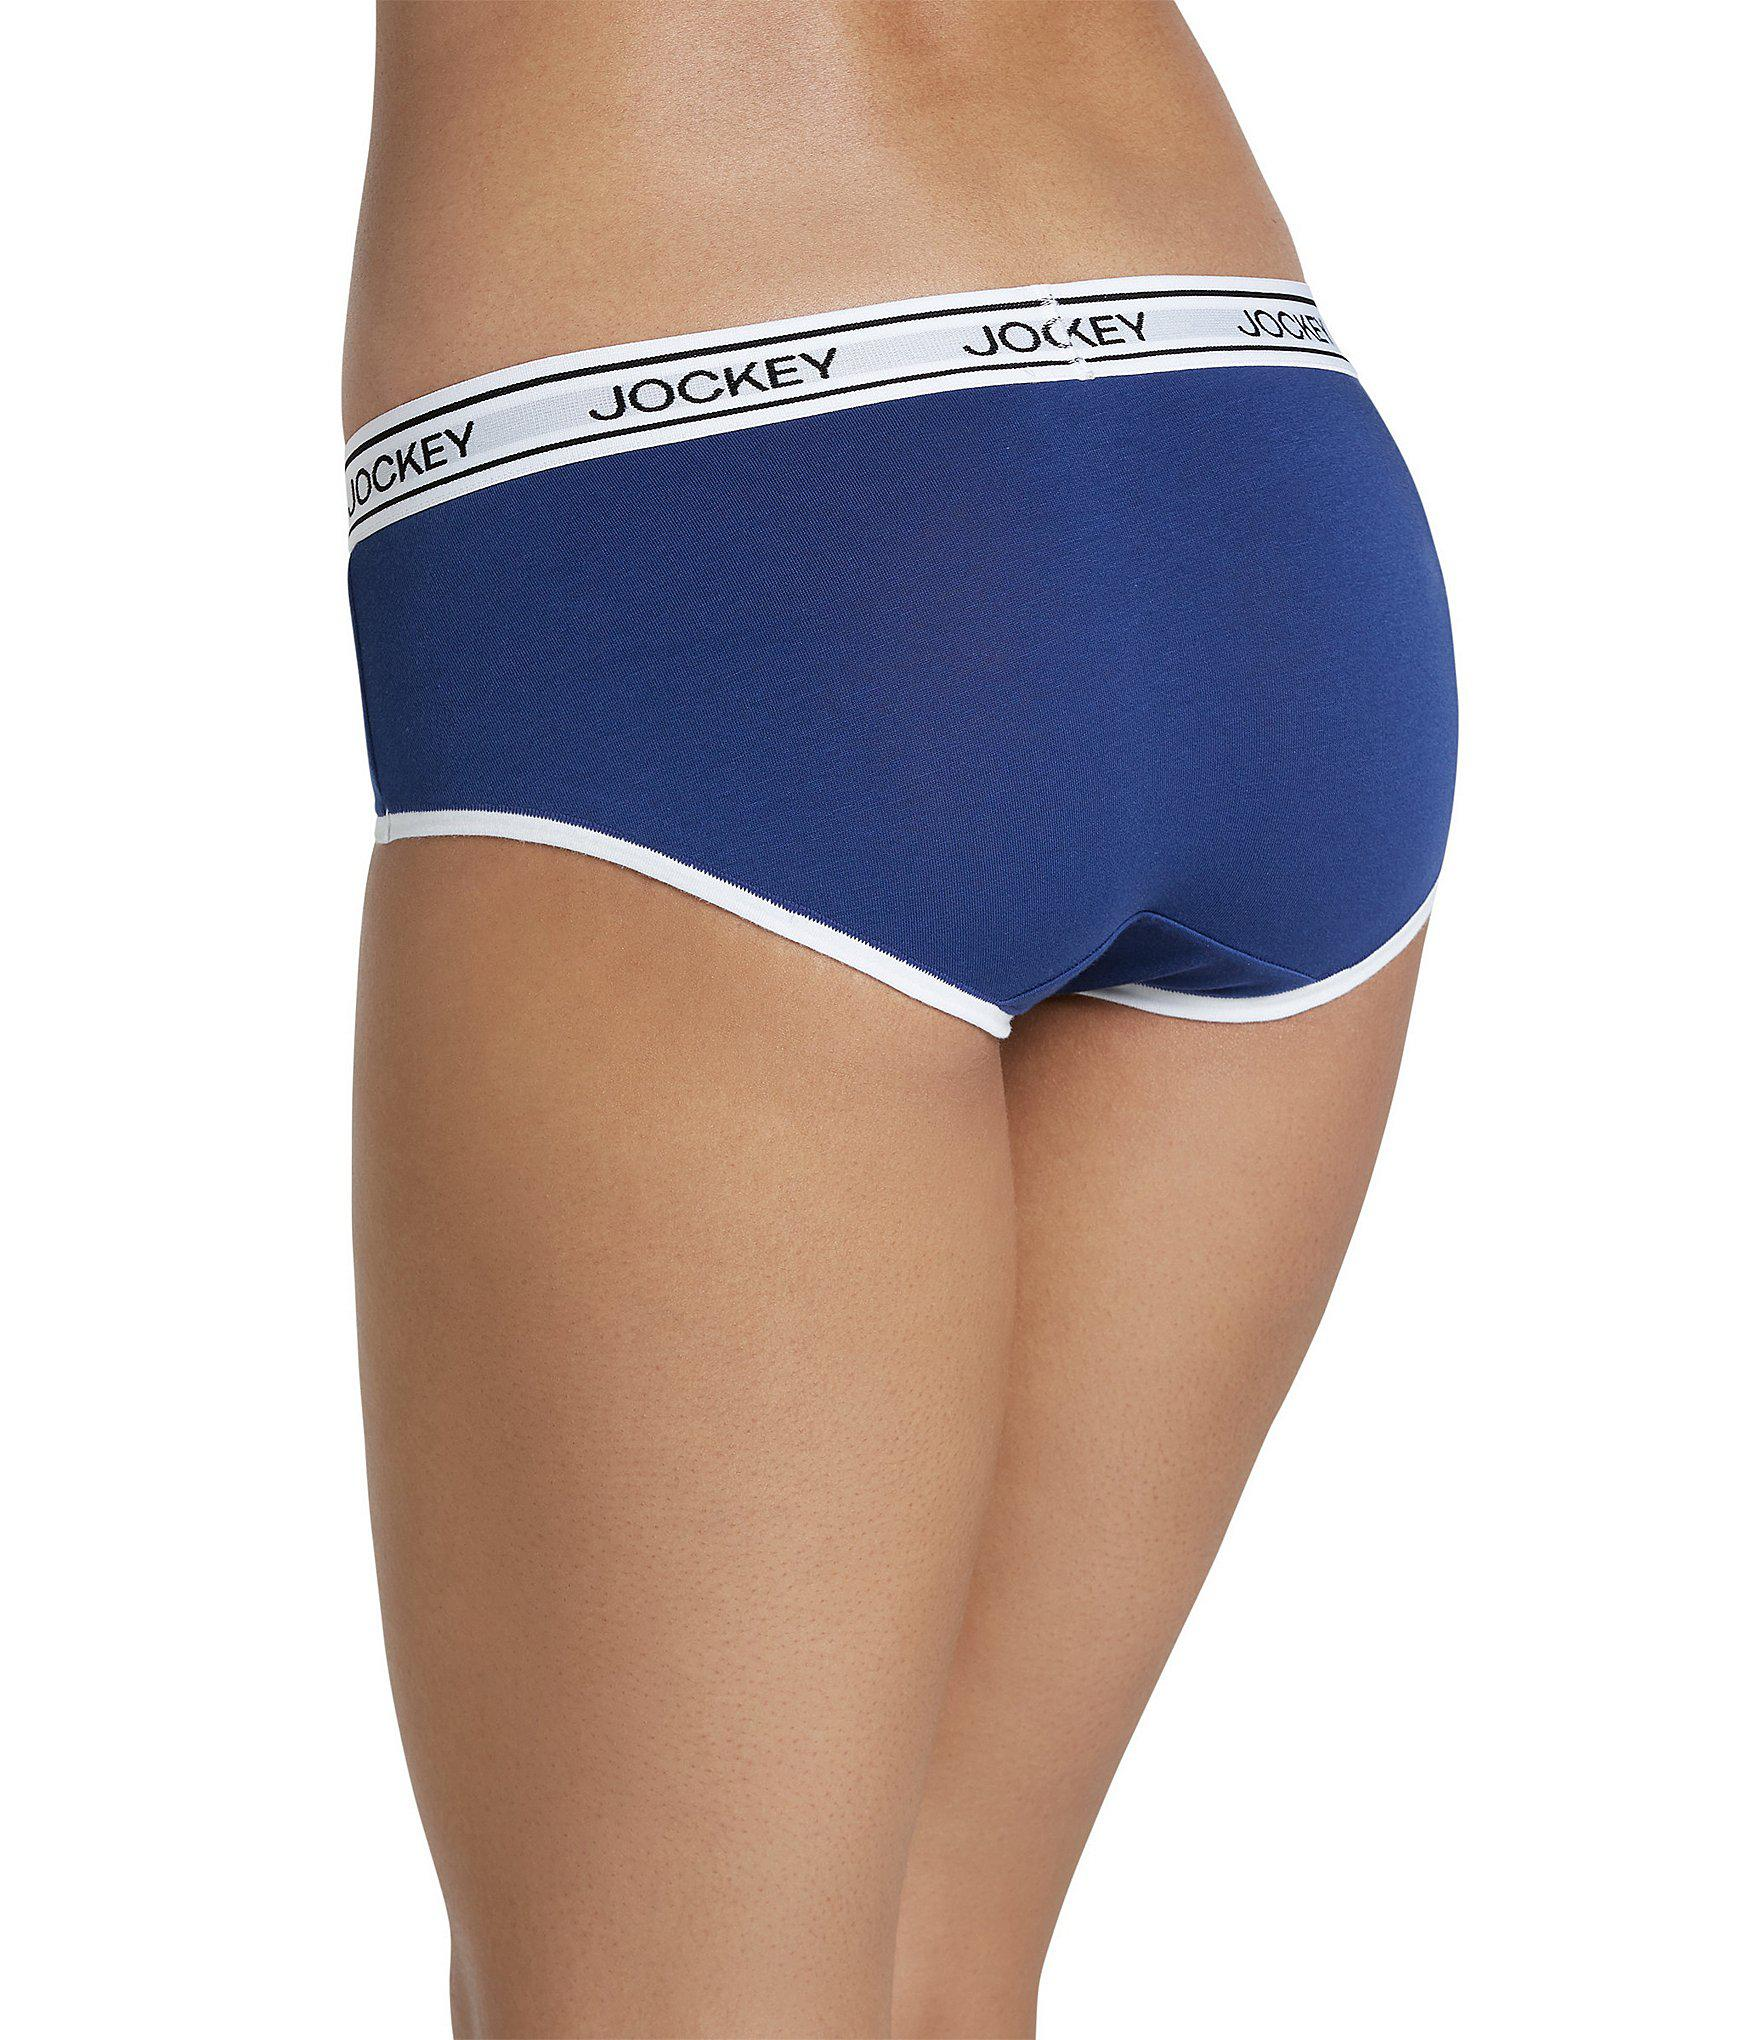 544322cc3796 Jockey Signature Modern Mix Logo Y-front Hipster Panty in Blue - Lyst